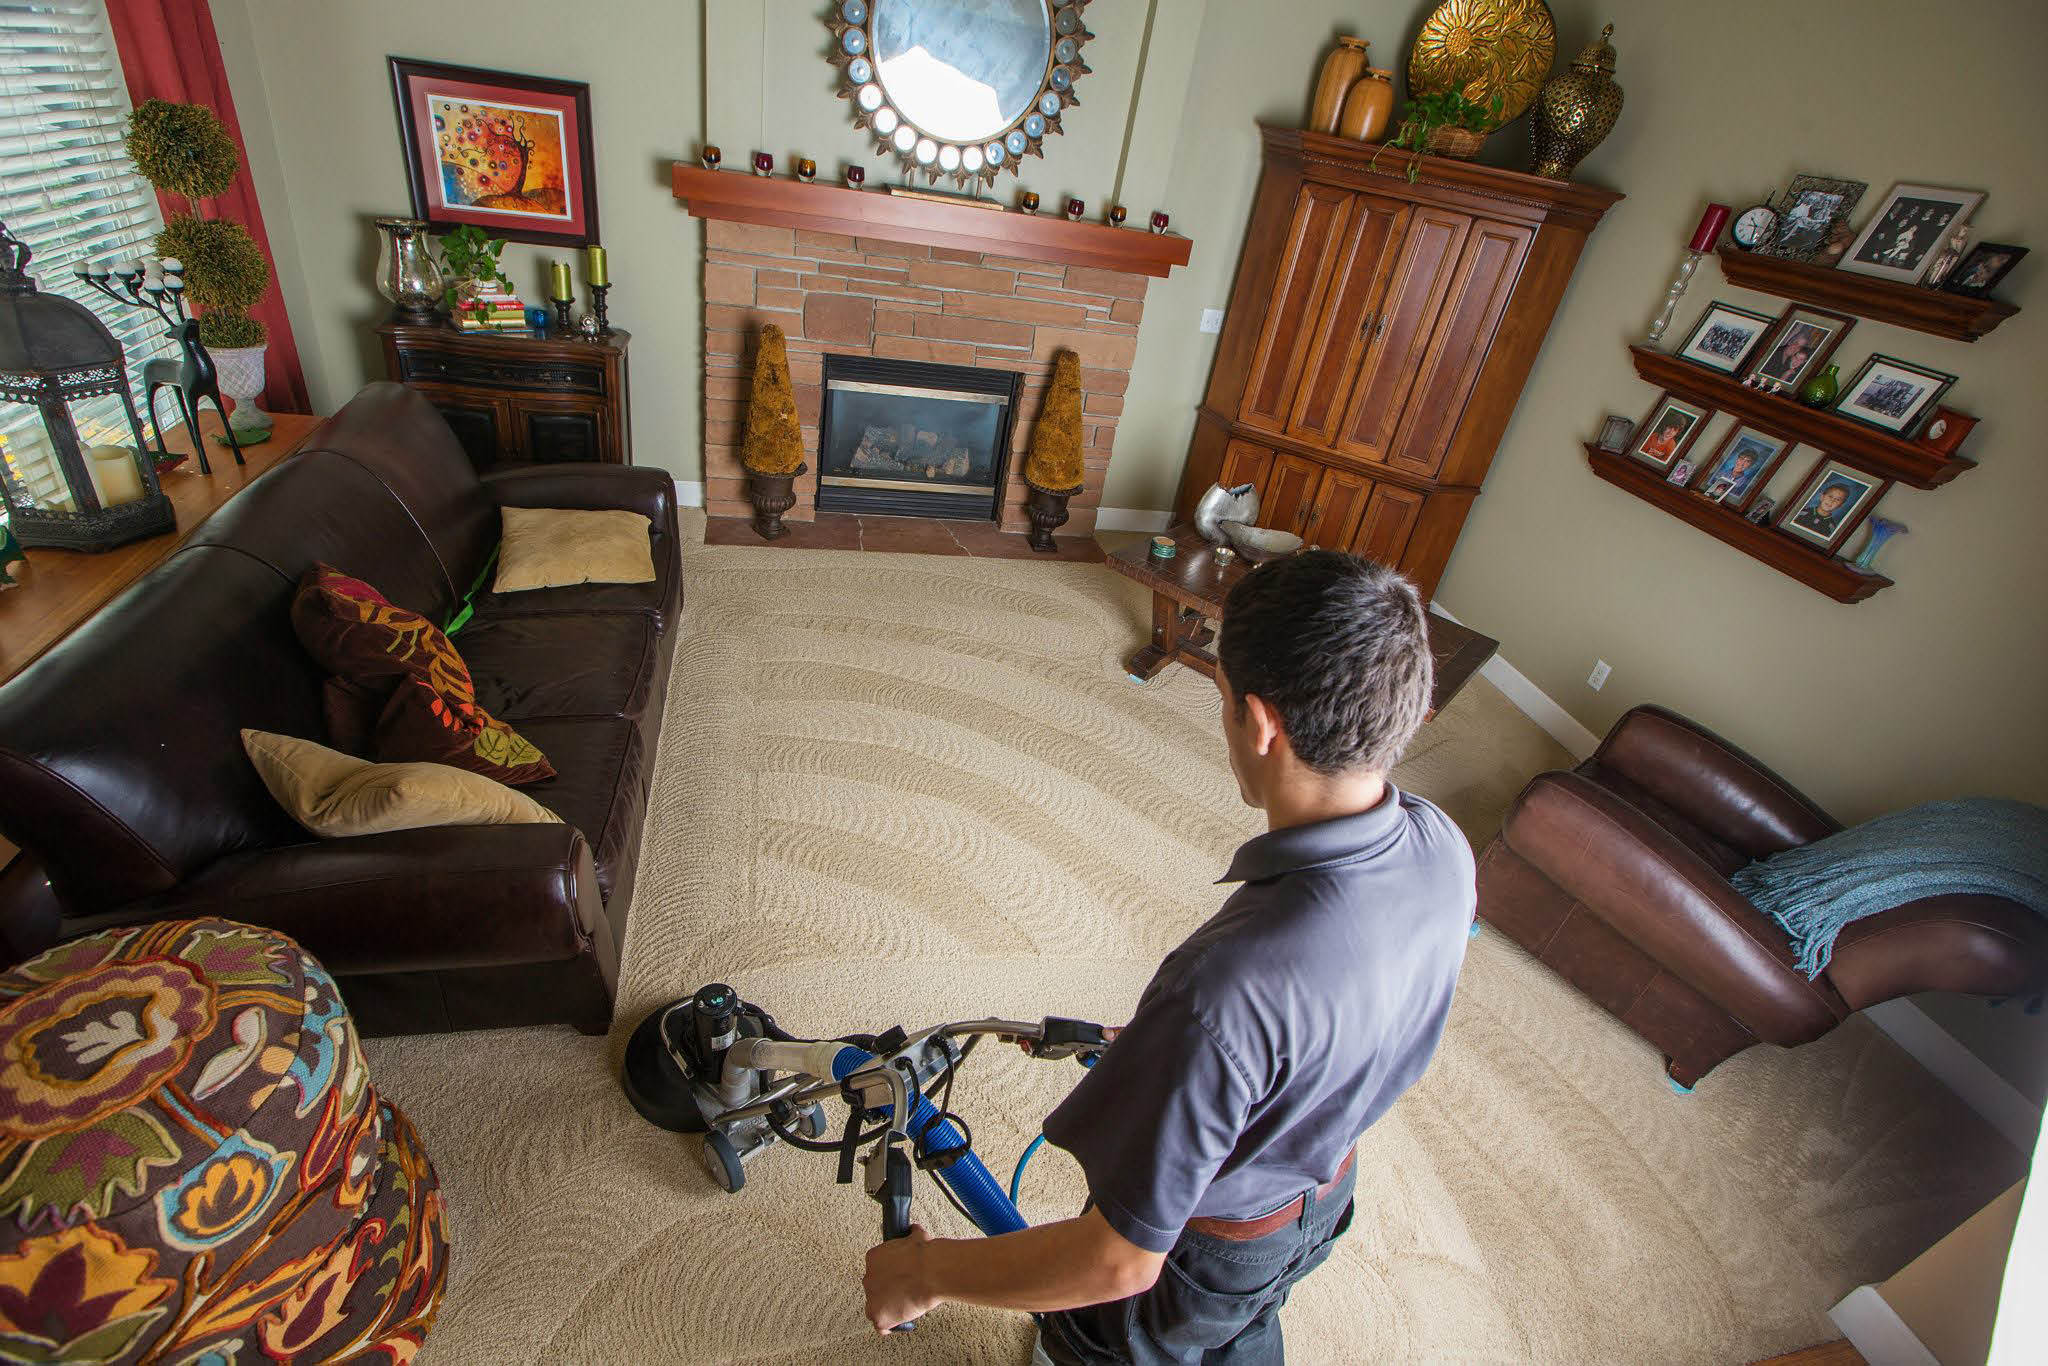 Carpet cleaners in Pierce County, King County & Snohomish County - Tubro Carpet Cleaning, Auburn, WA